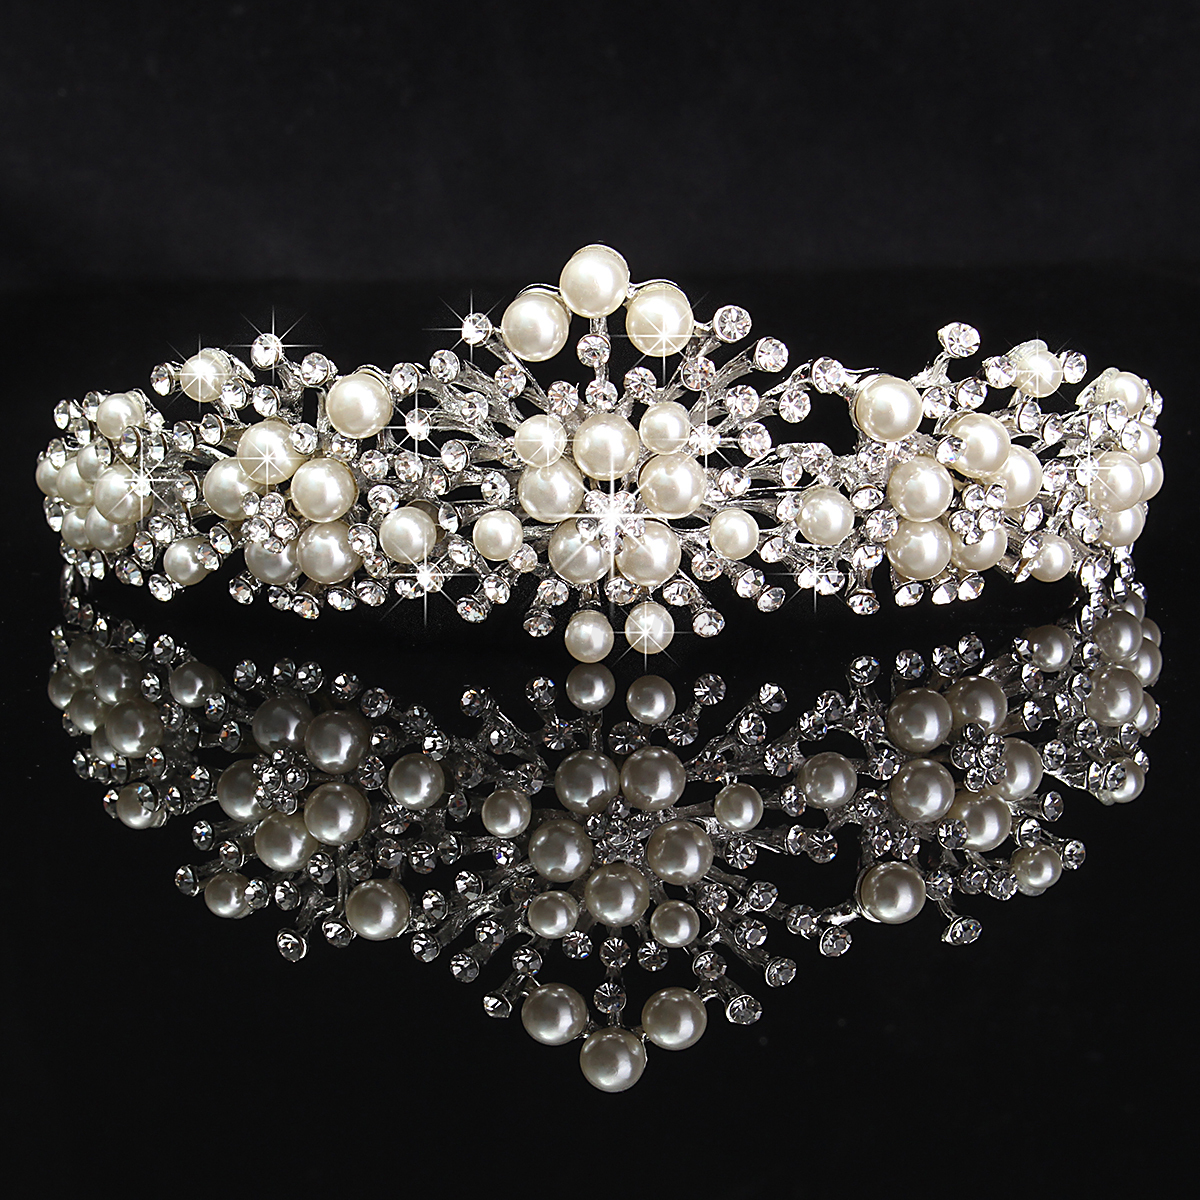 Princess-Bridal-Wedding-Prom-Headband-Crystal-Rhinestone-Pearl-Veil-Tiara-Crown thumbnail 31